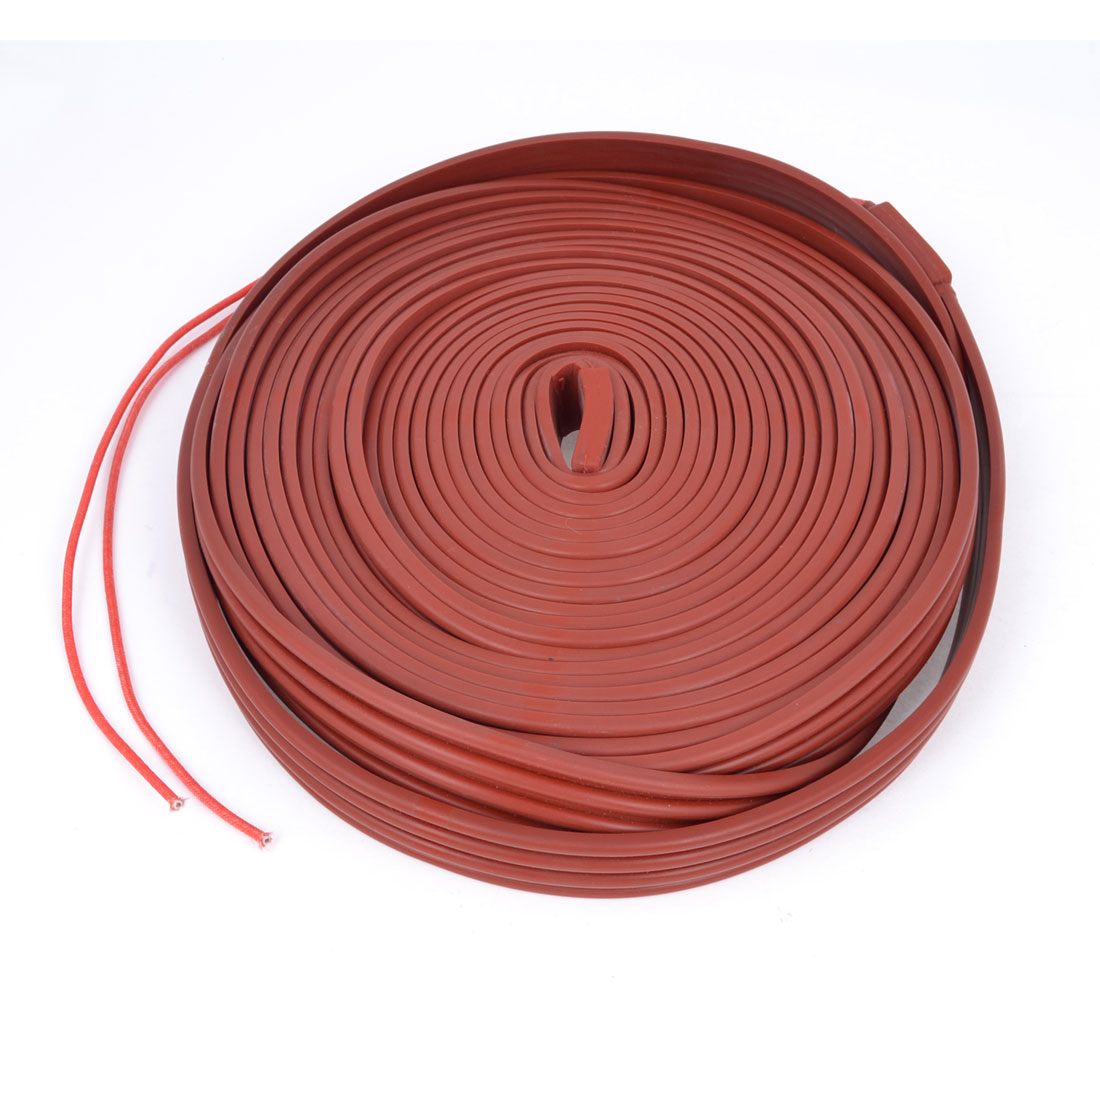 Brick Red Pipeline Waterproof Heating Cable 220V 10M x 25mm